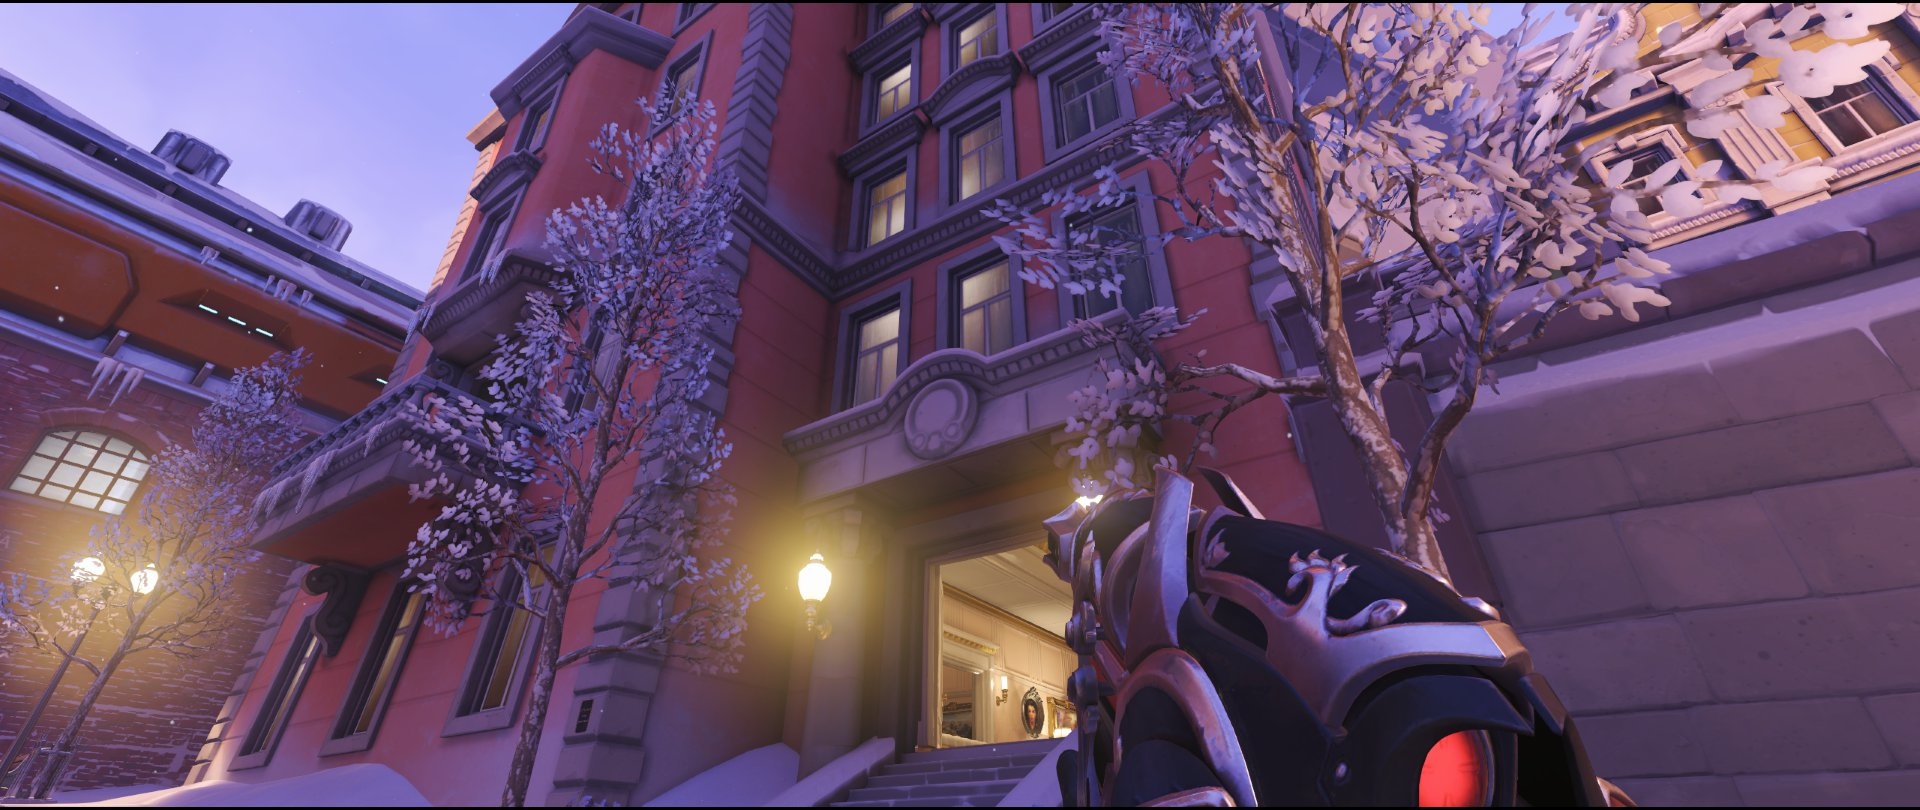 Manor right side attack sniping spot Widowmaker Volskaya Industries Overwatch.jpg